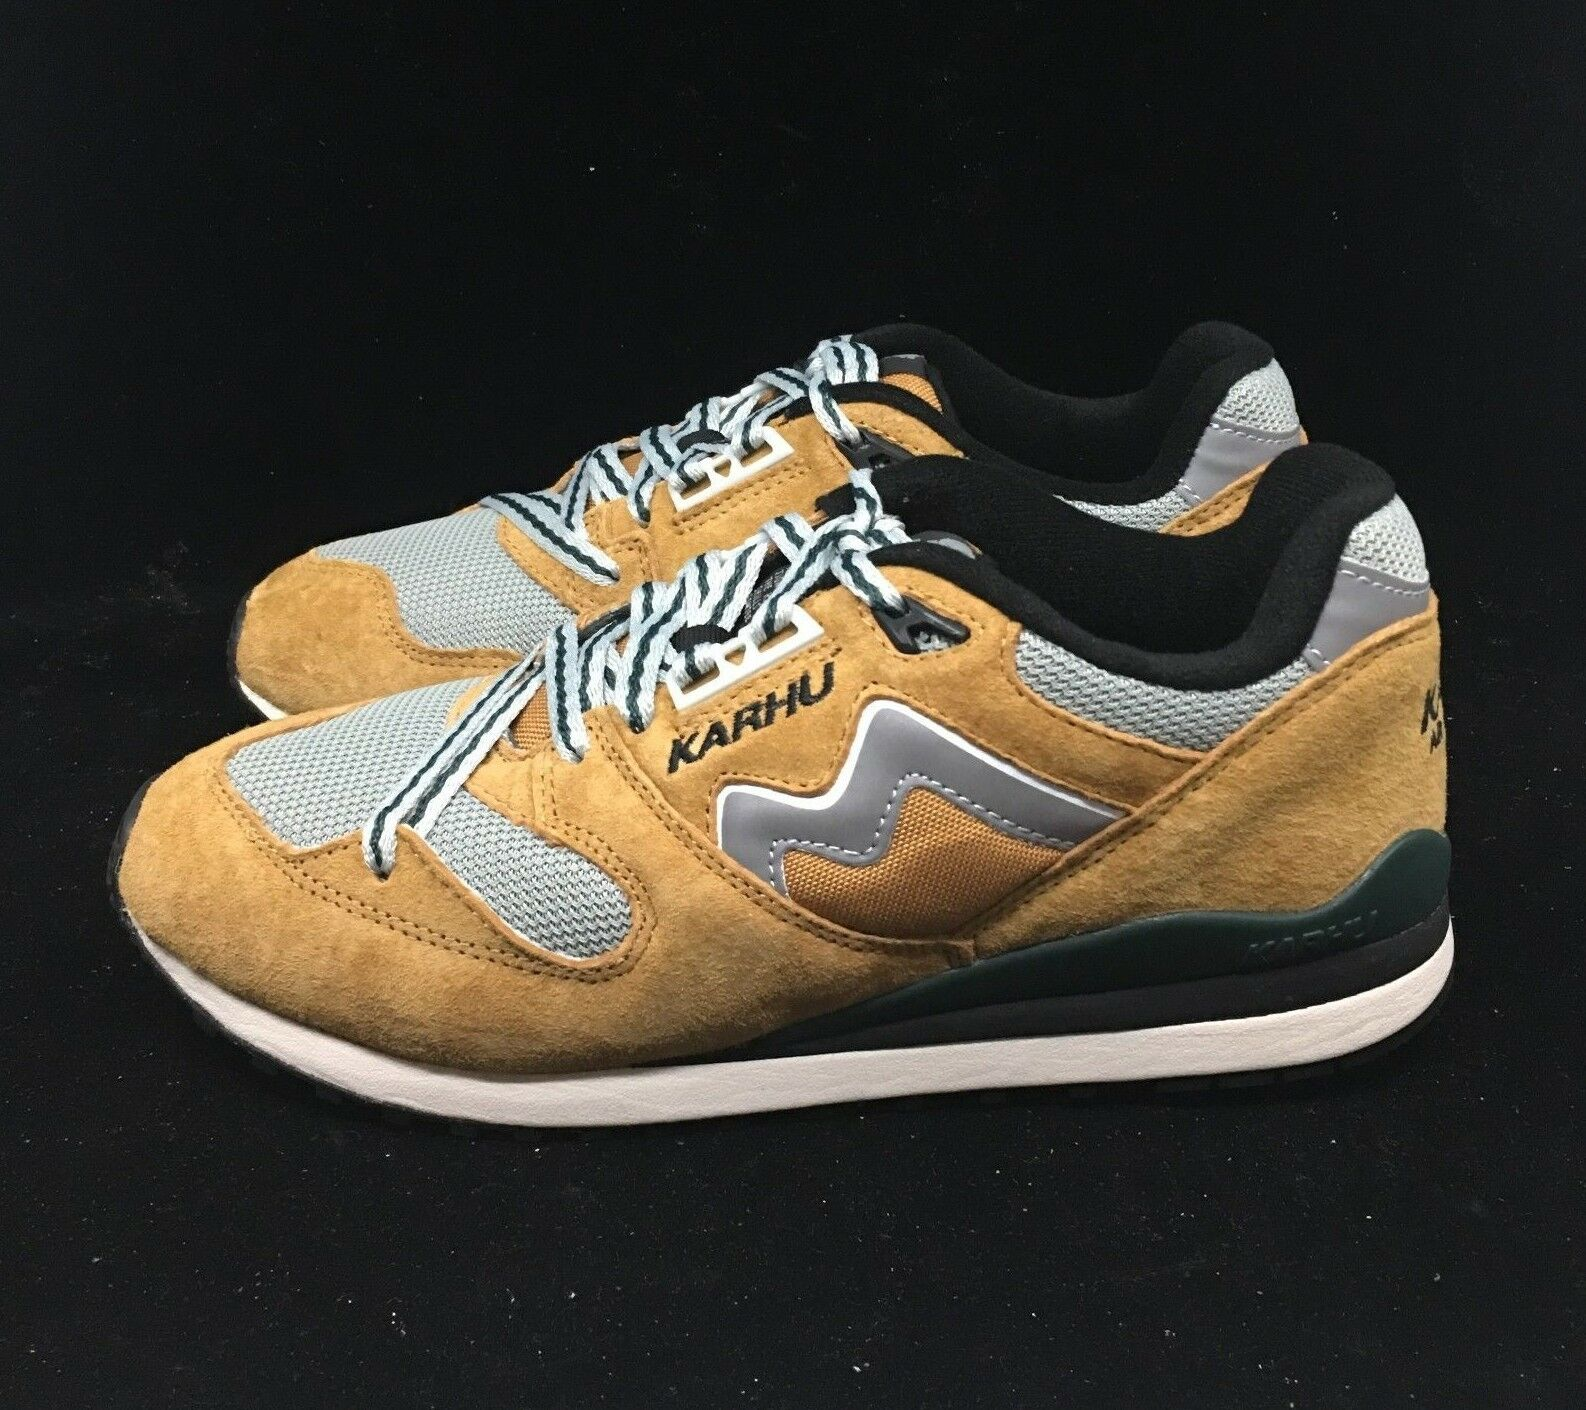 Karhu Synchron Classic Joia Alluminio Suede Outdoor Pack F802622